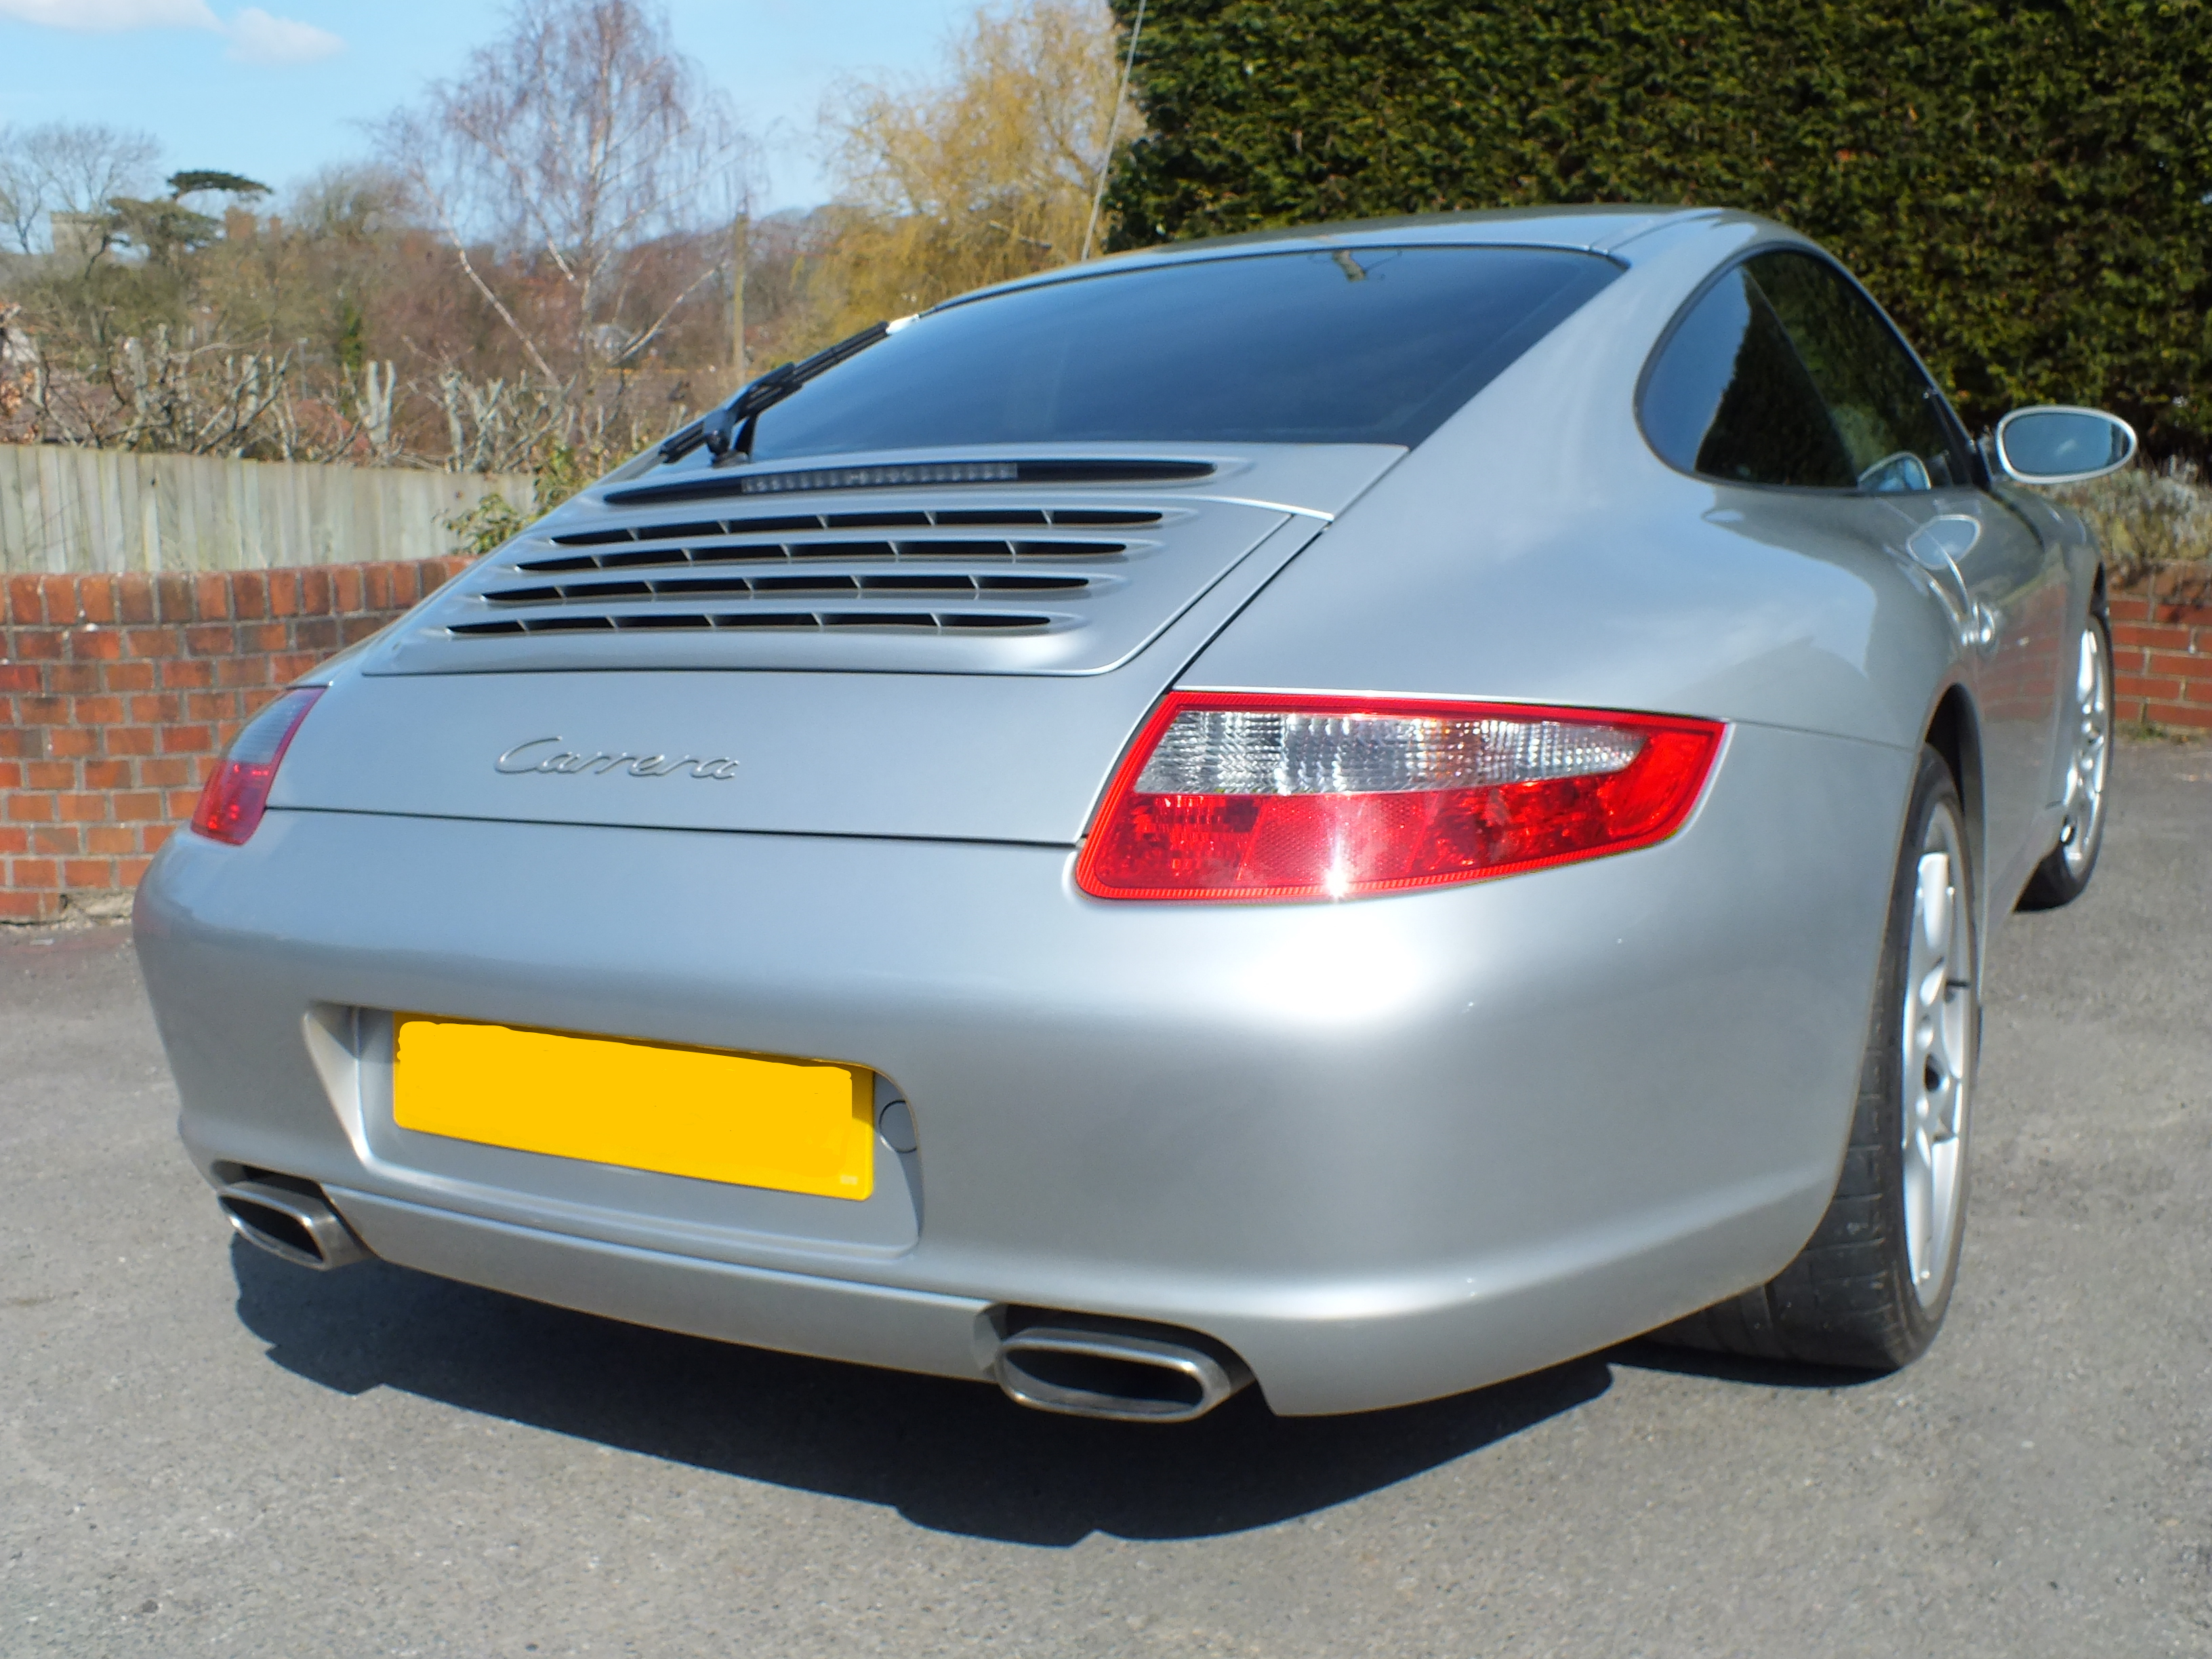 Porsche Carrera at Tinting Express Barnstaple North Devon's No.1 car tinting service